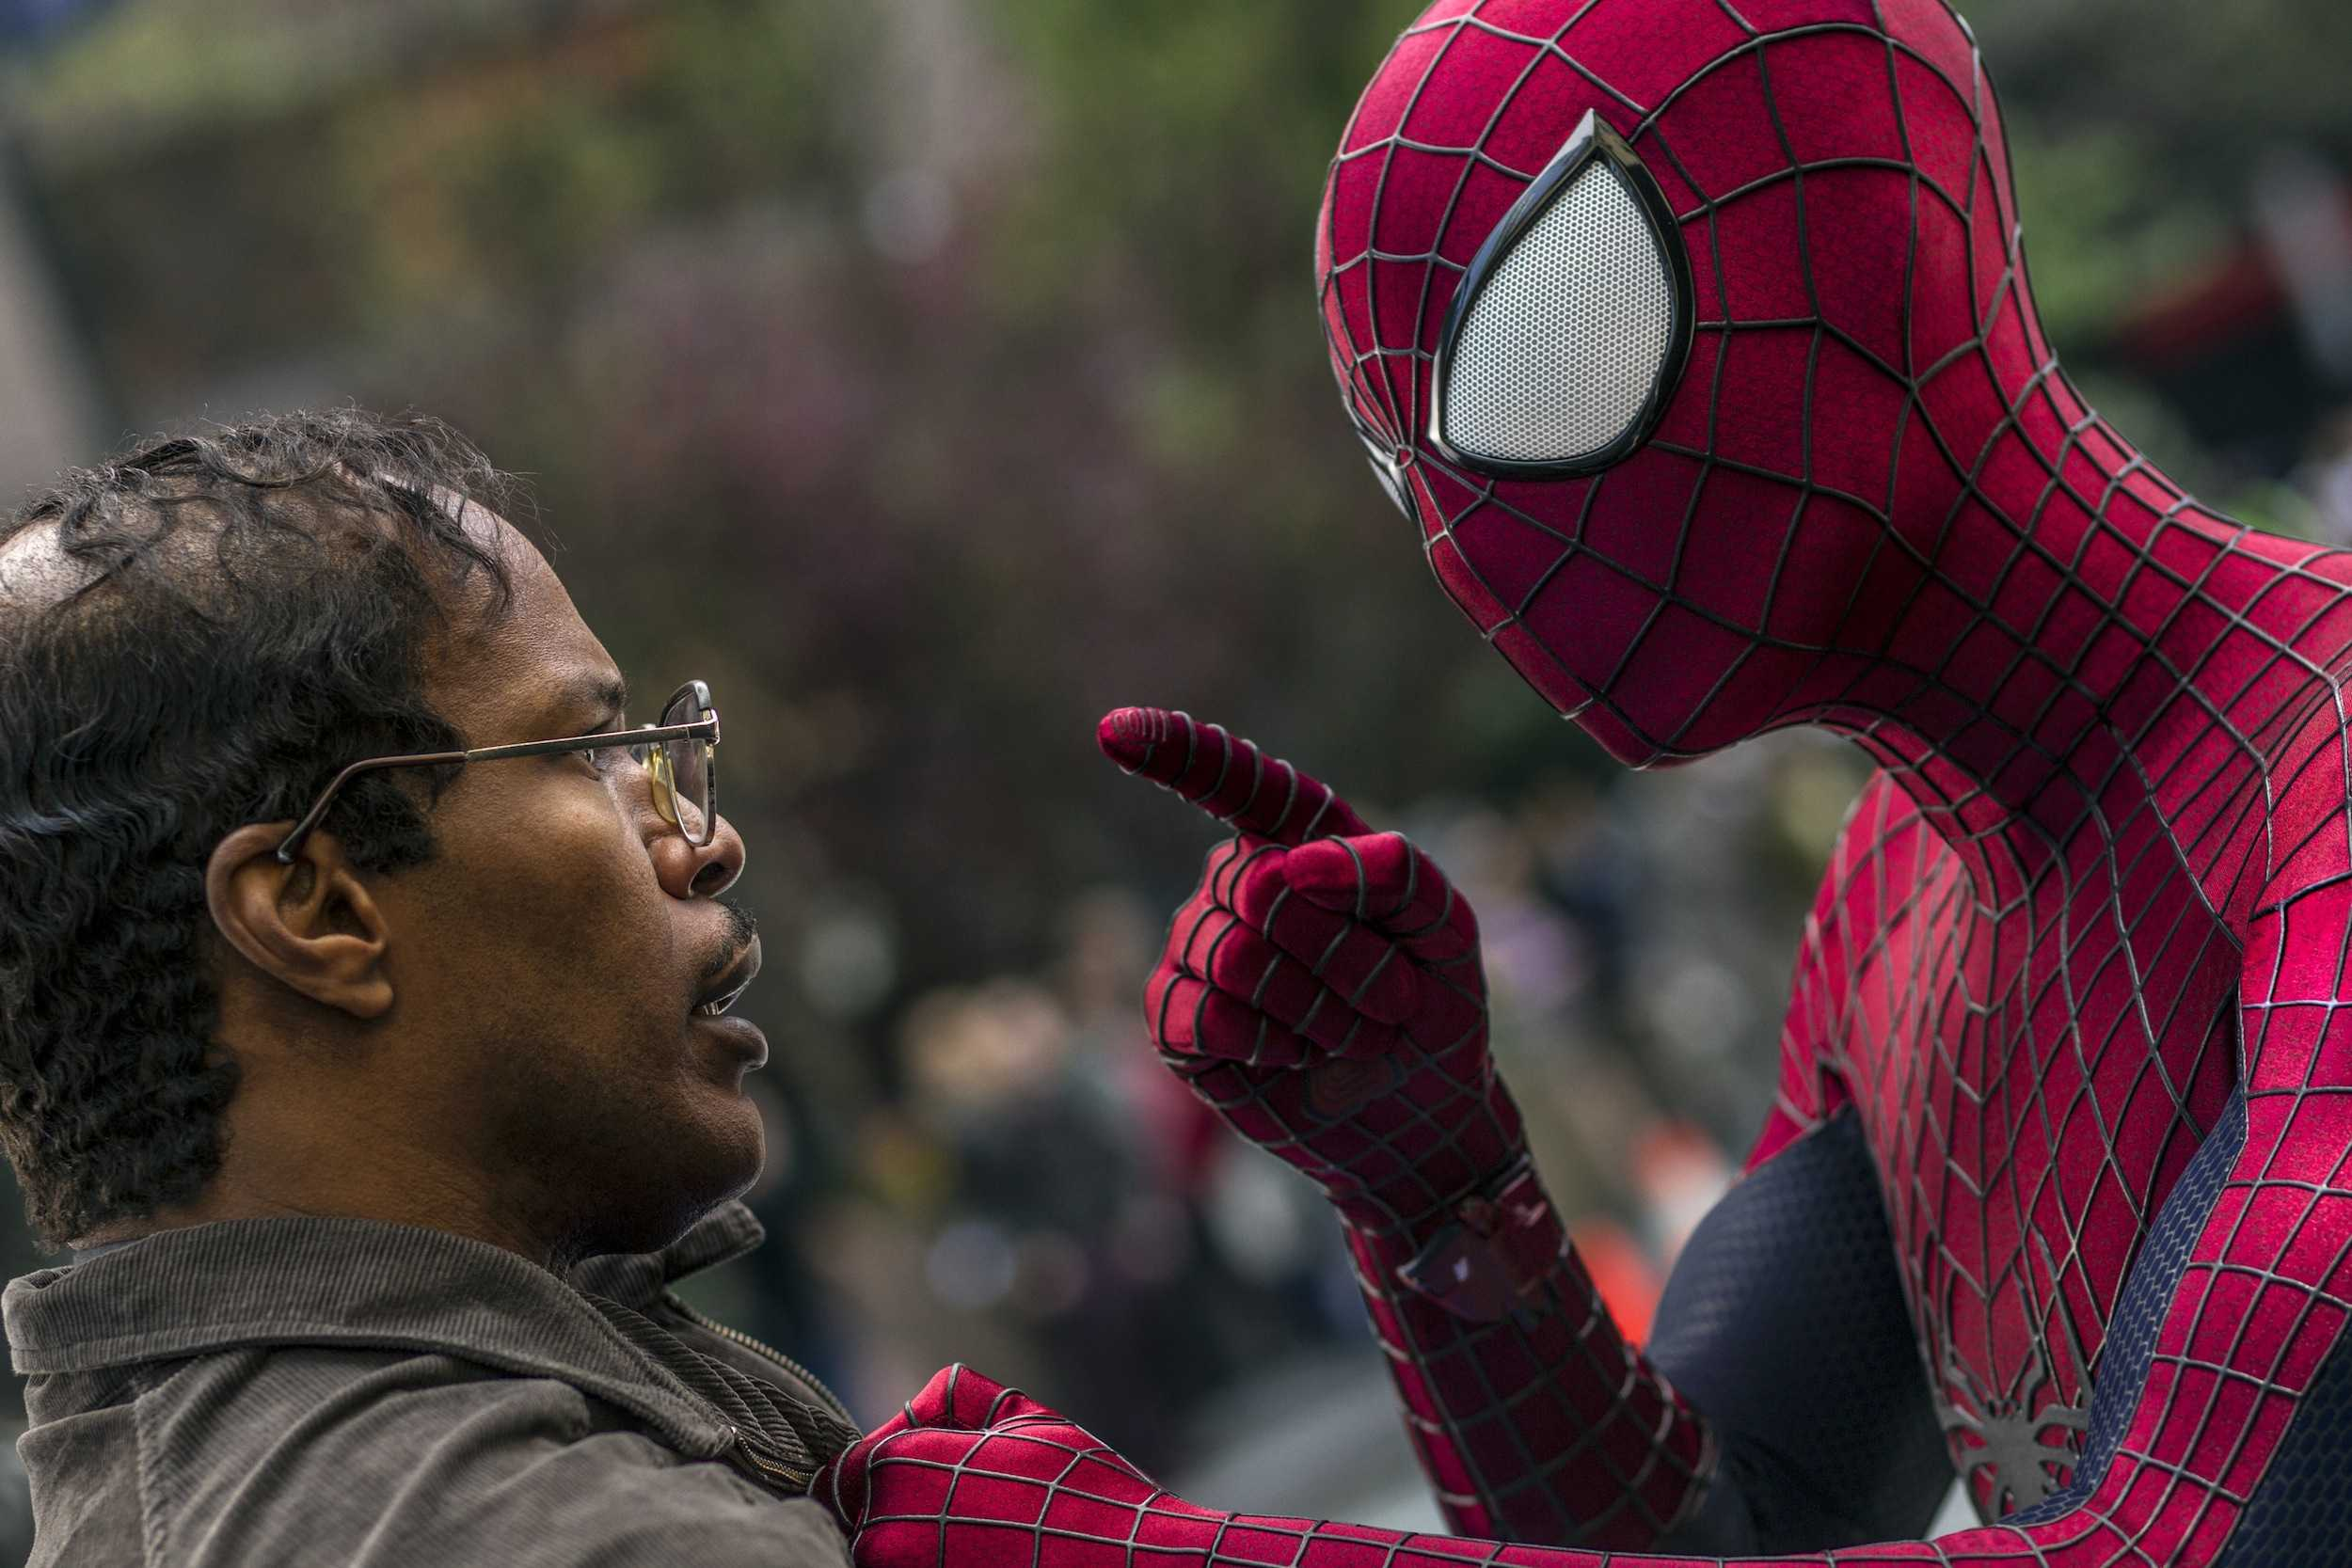 Max Dillon (Jamie Foxx) and Spider-Man (Andrew Garfield) come face to face more than once in